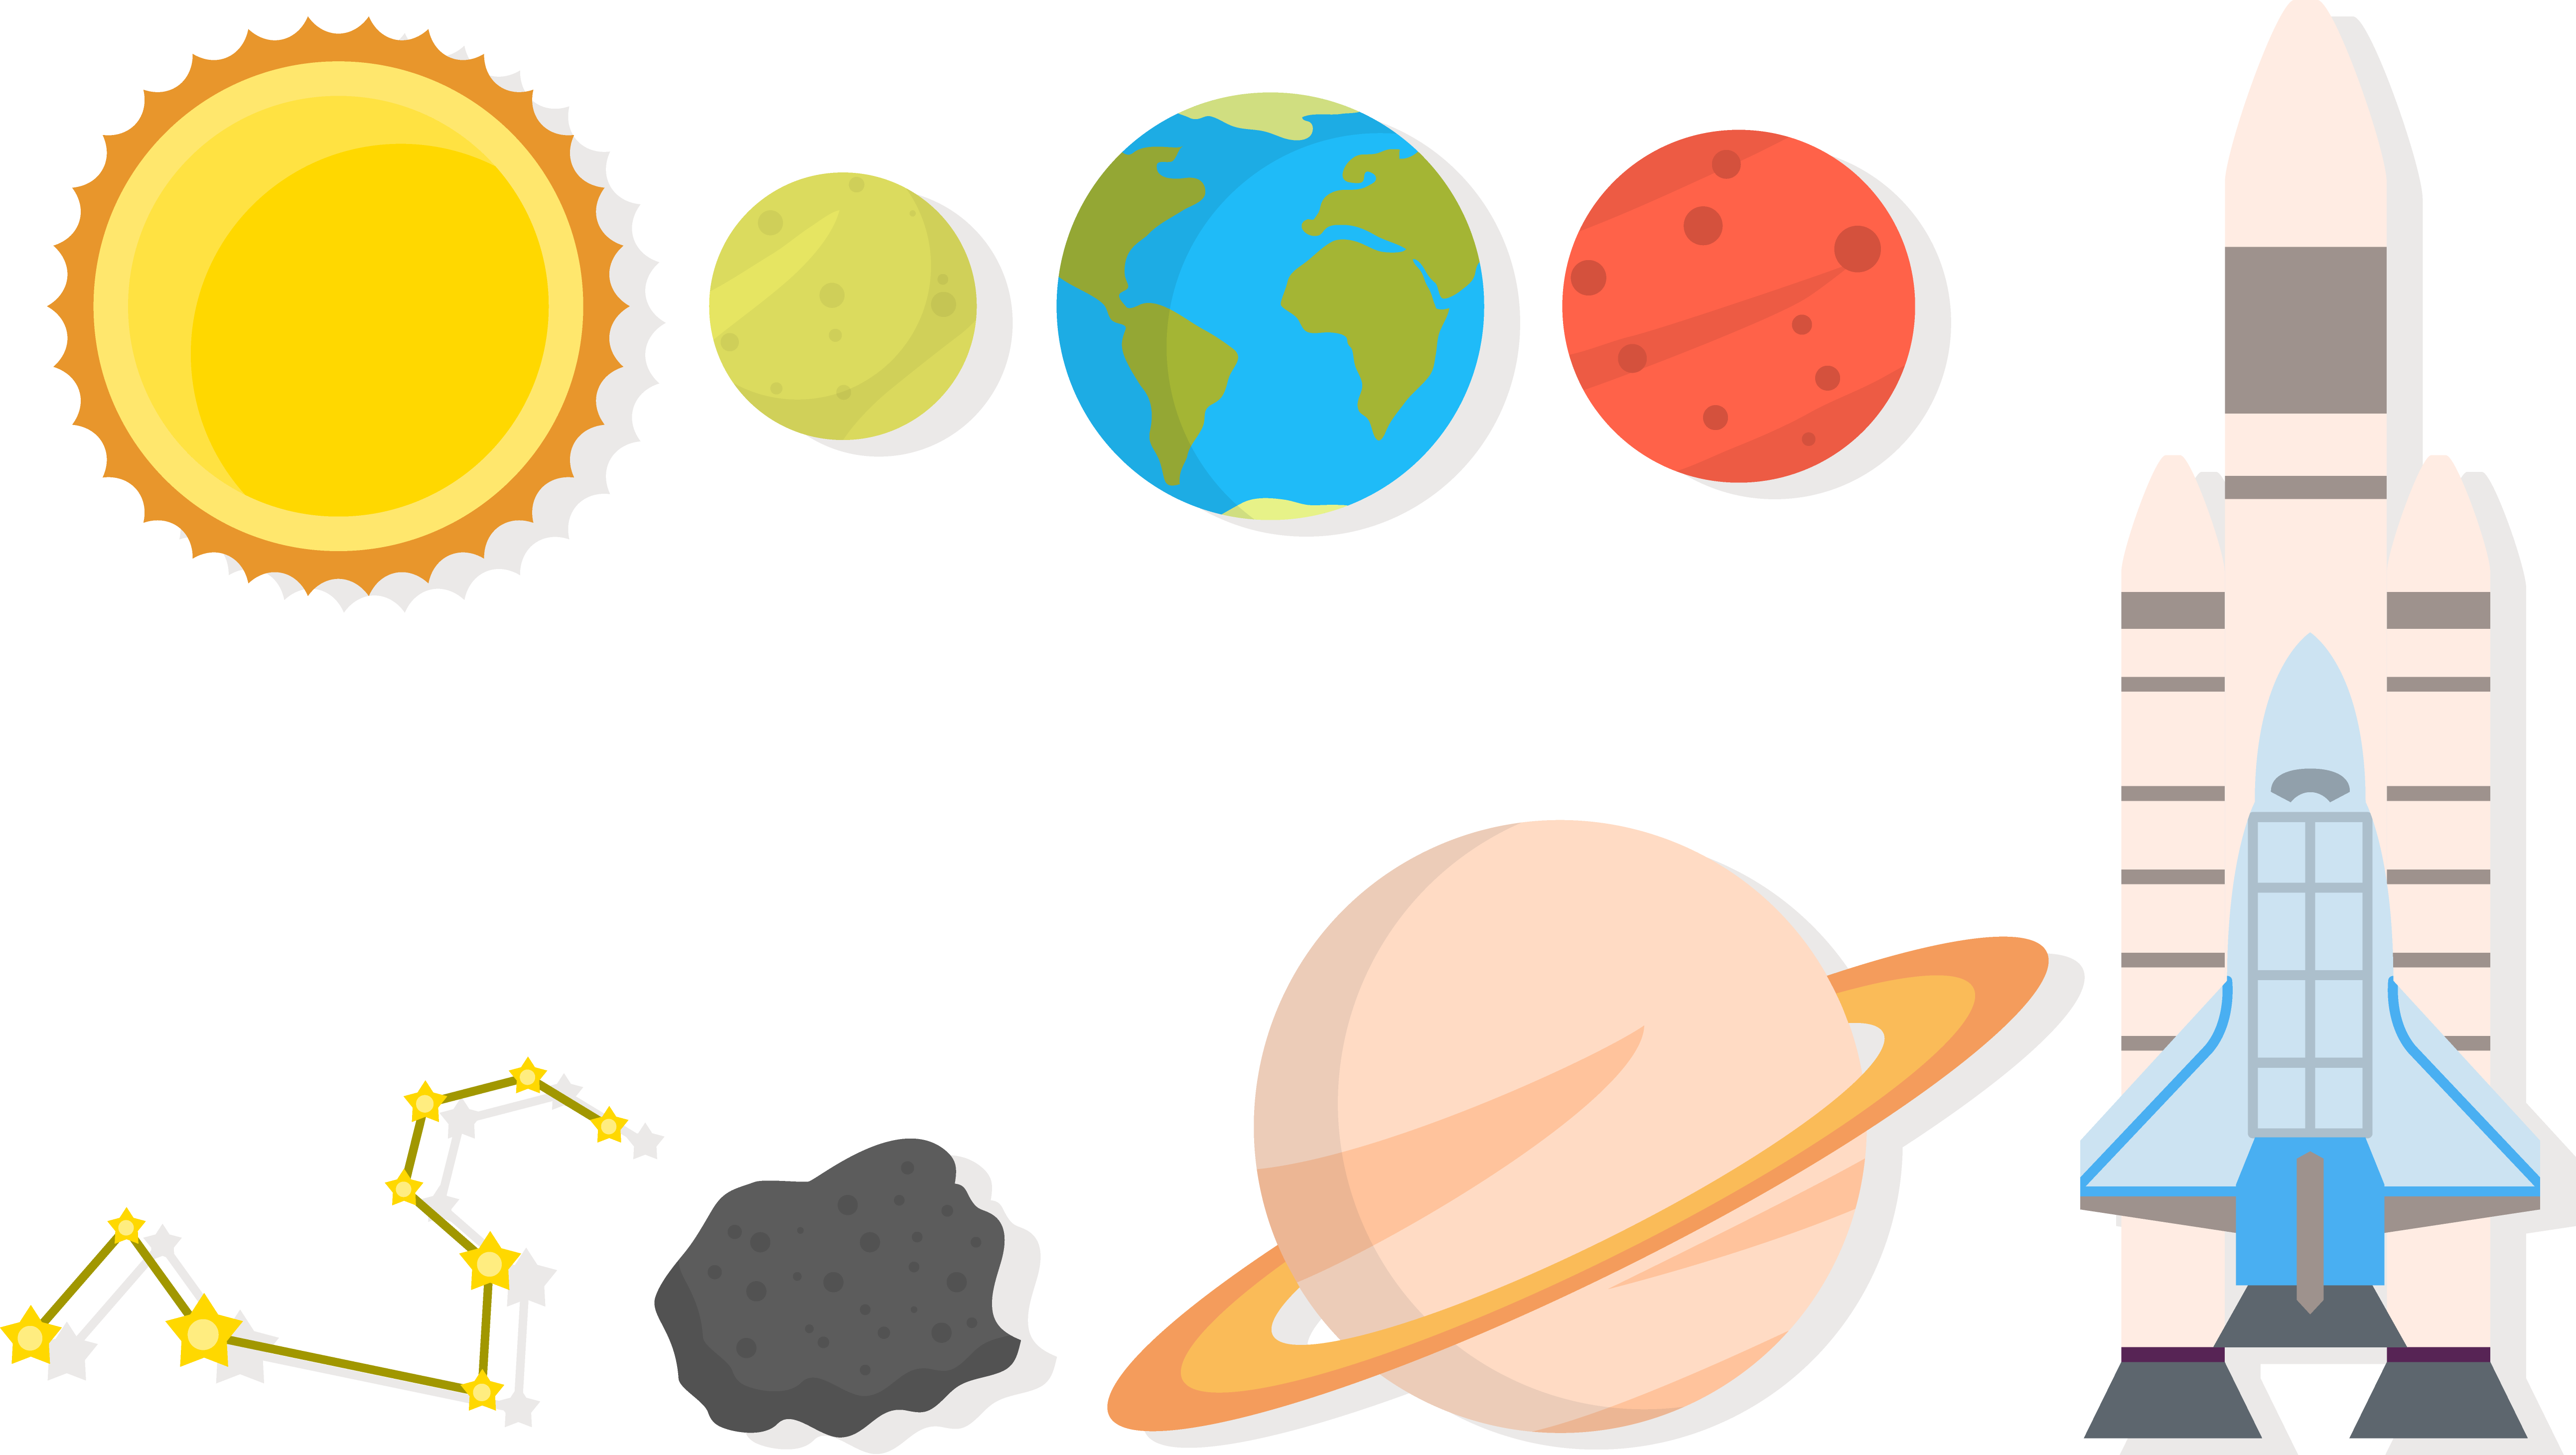 Planet clipart order drawing. Universe technical symbol ufo